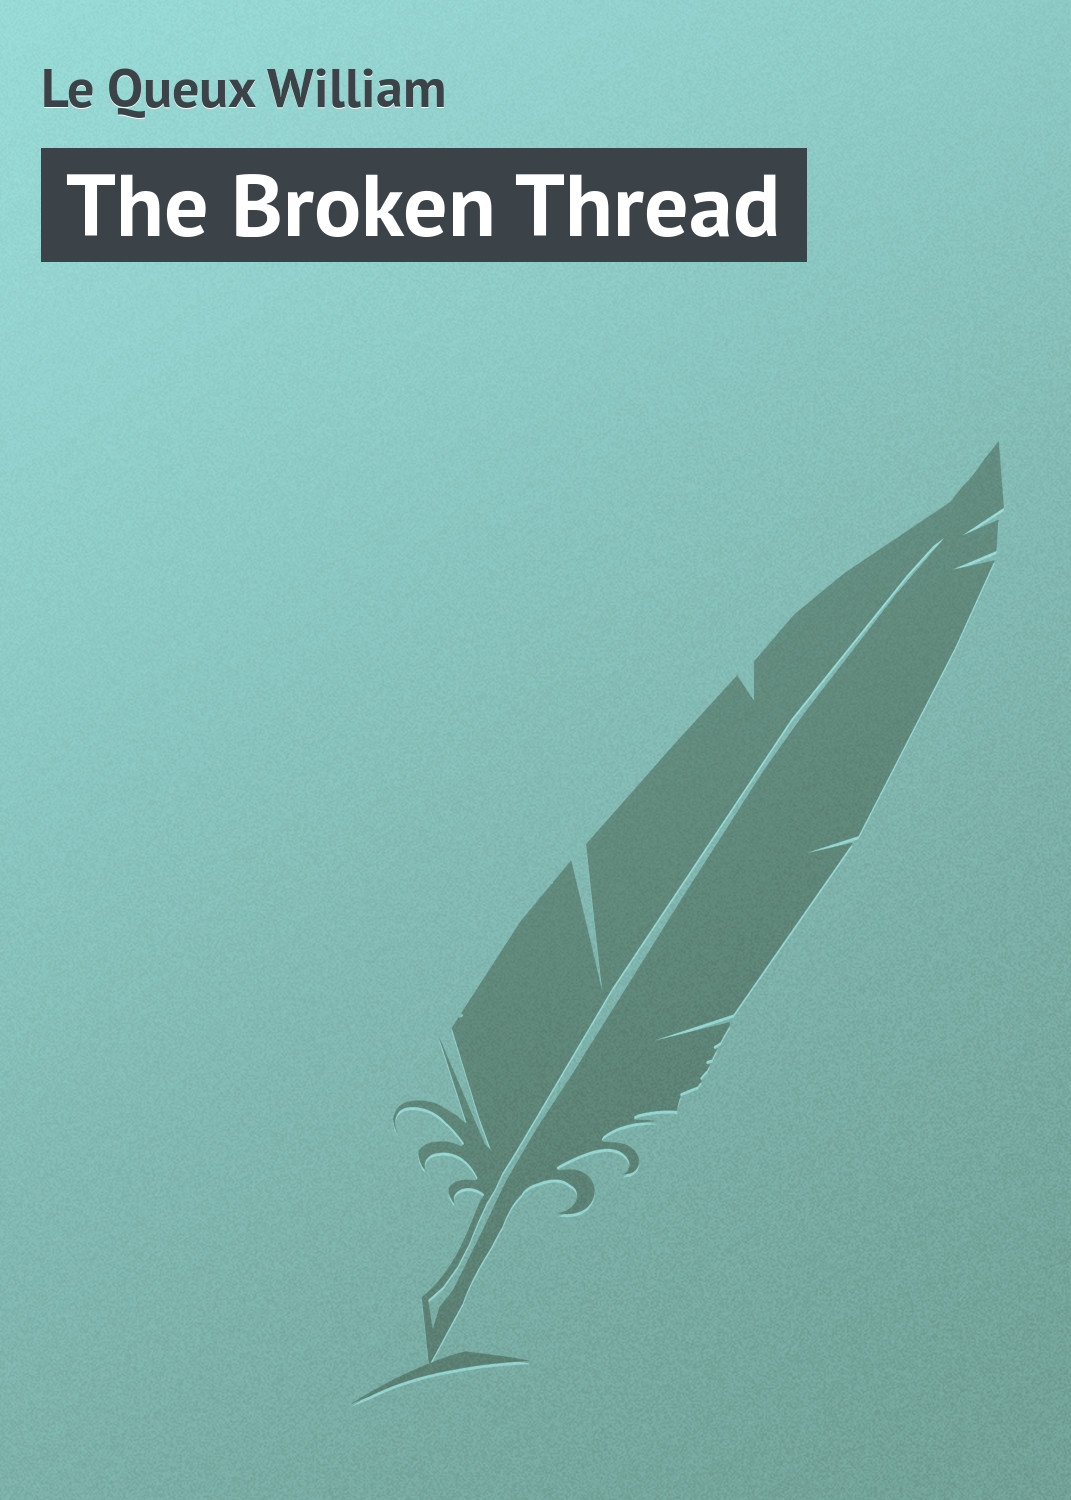 Le Queux William The Broken Thread